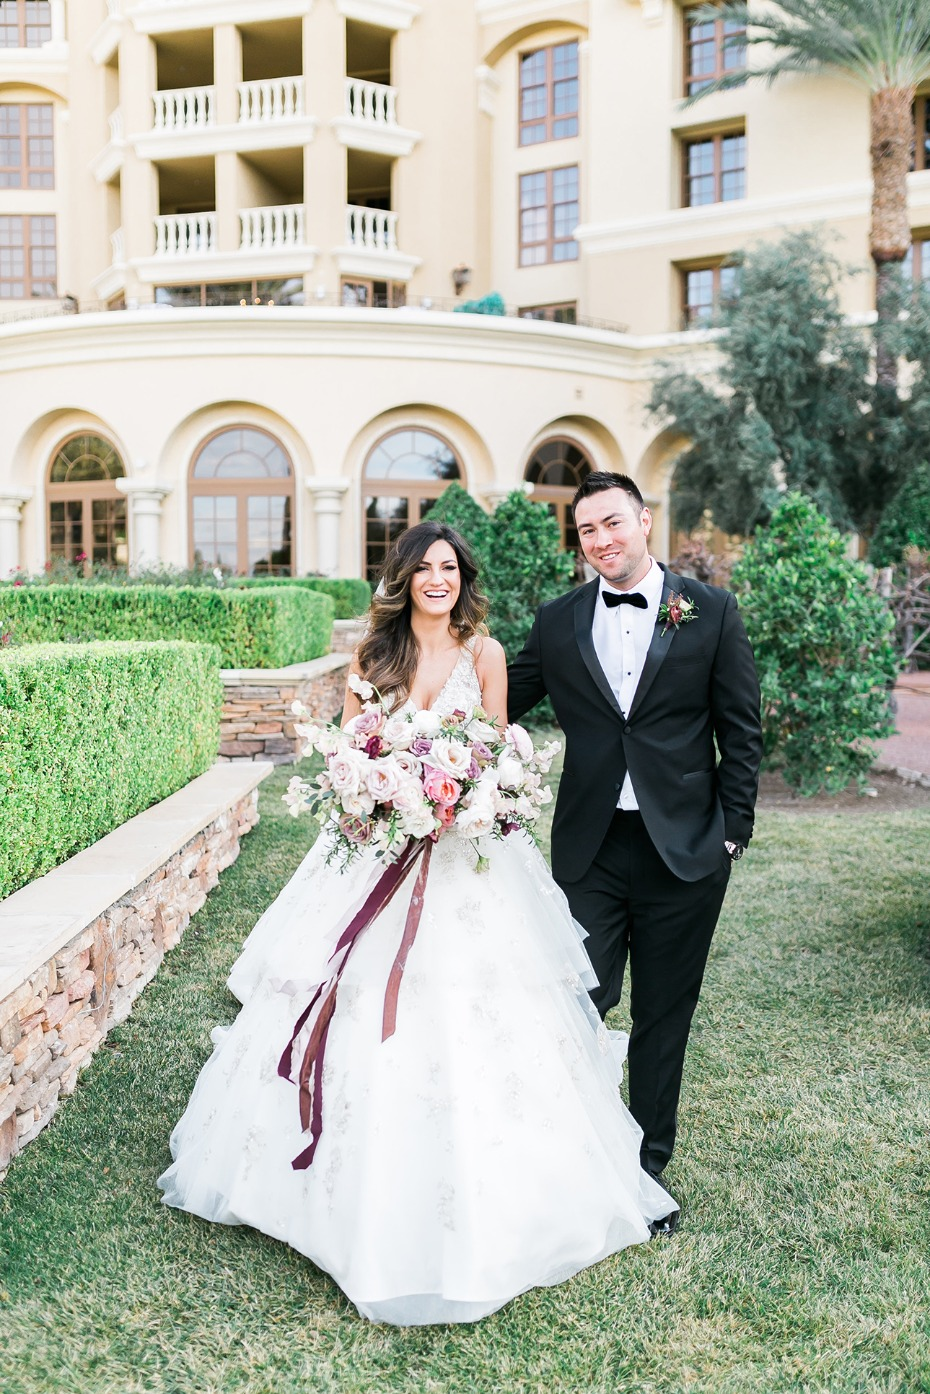 Beautiful Las Vegas wedding